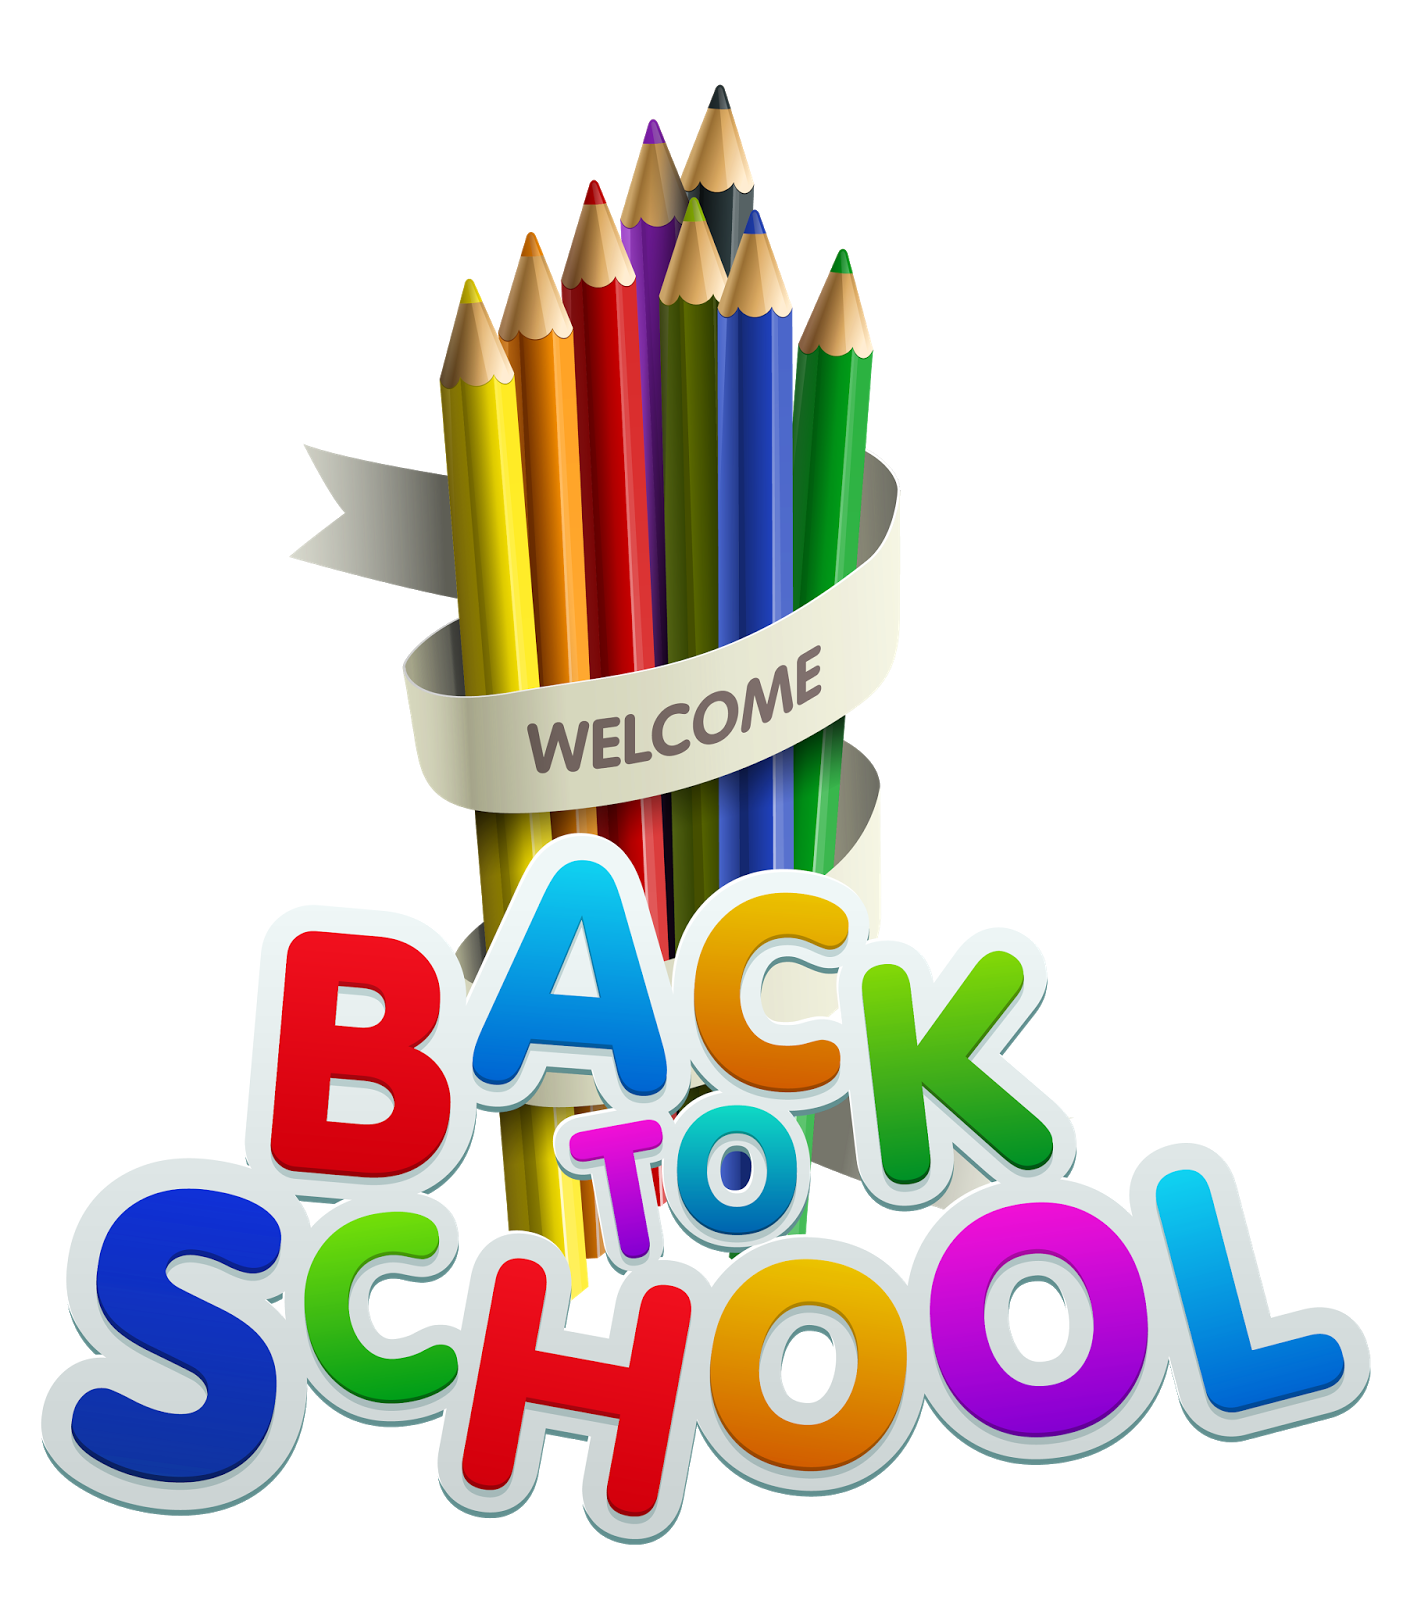 Clipart back to school free vector black and white Best Free Back To School Png Image #23353 - Free Icons and PNG ... vector black and white